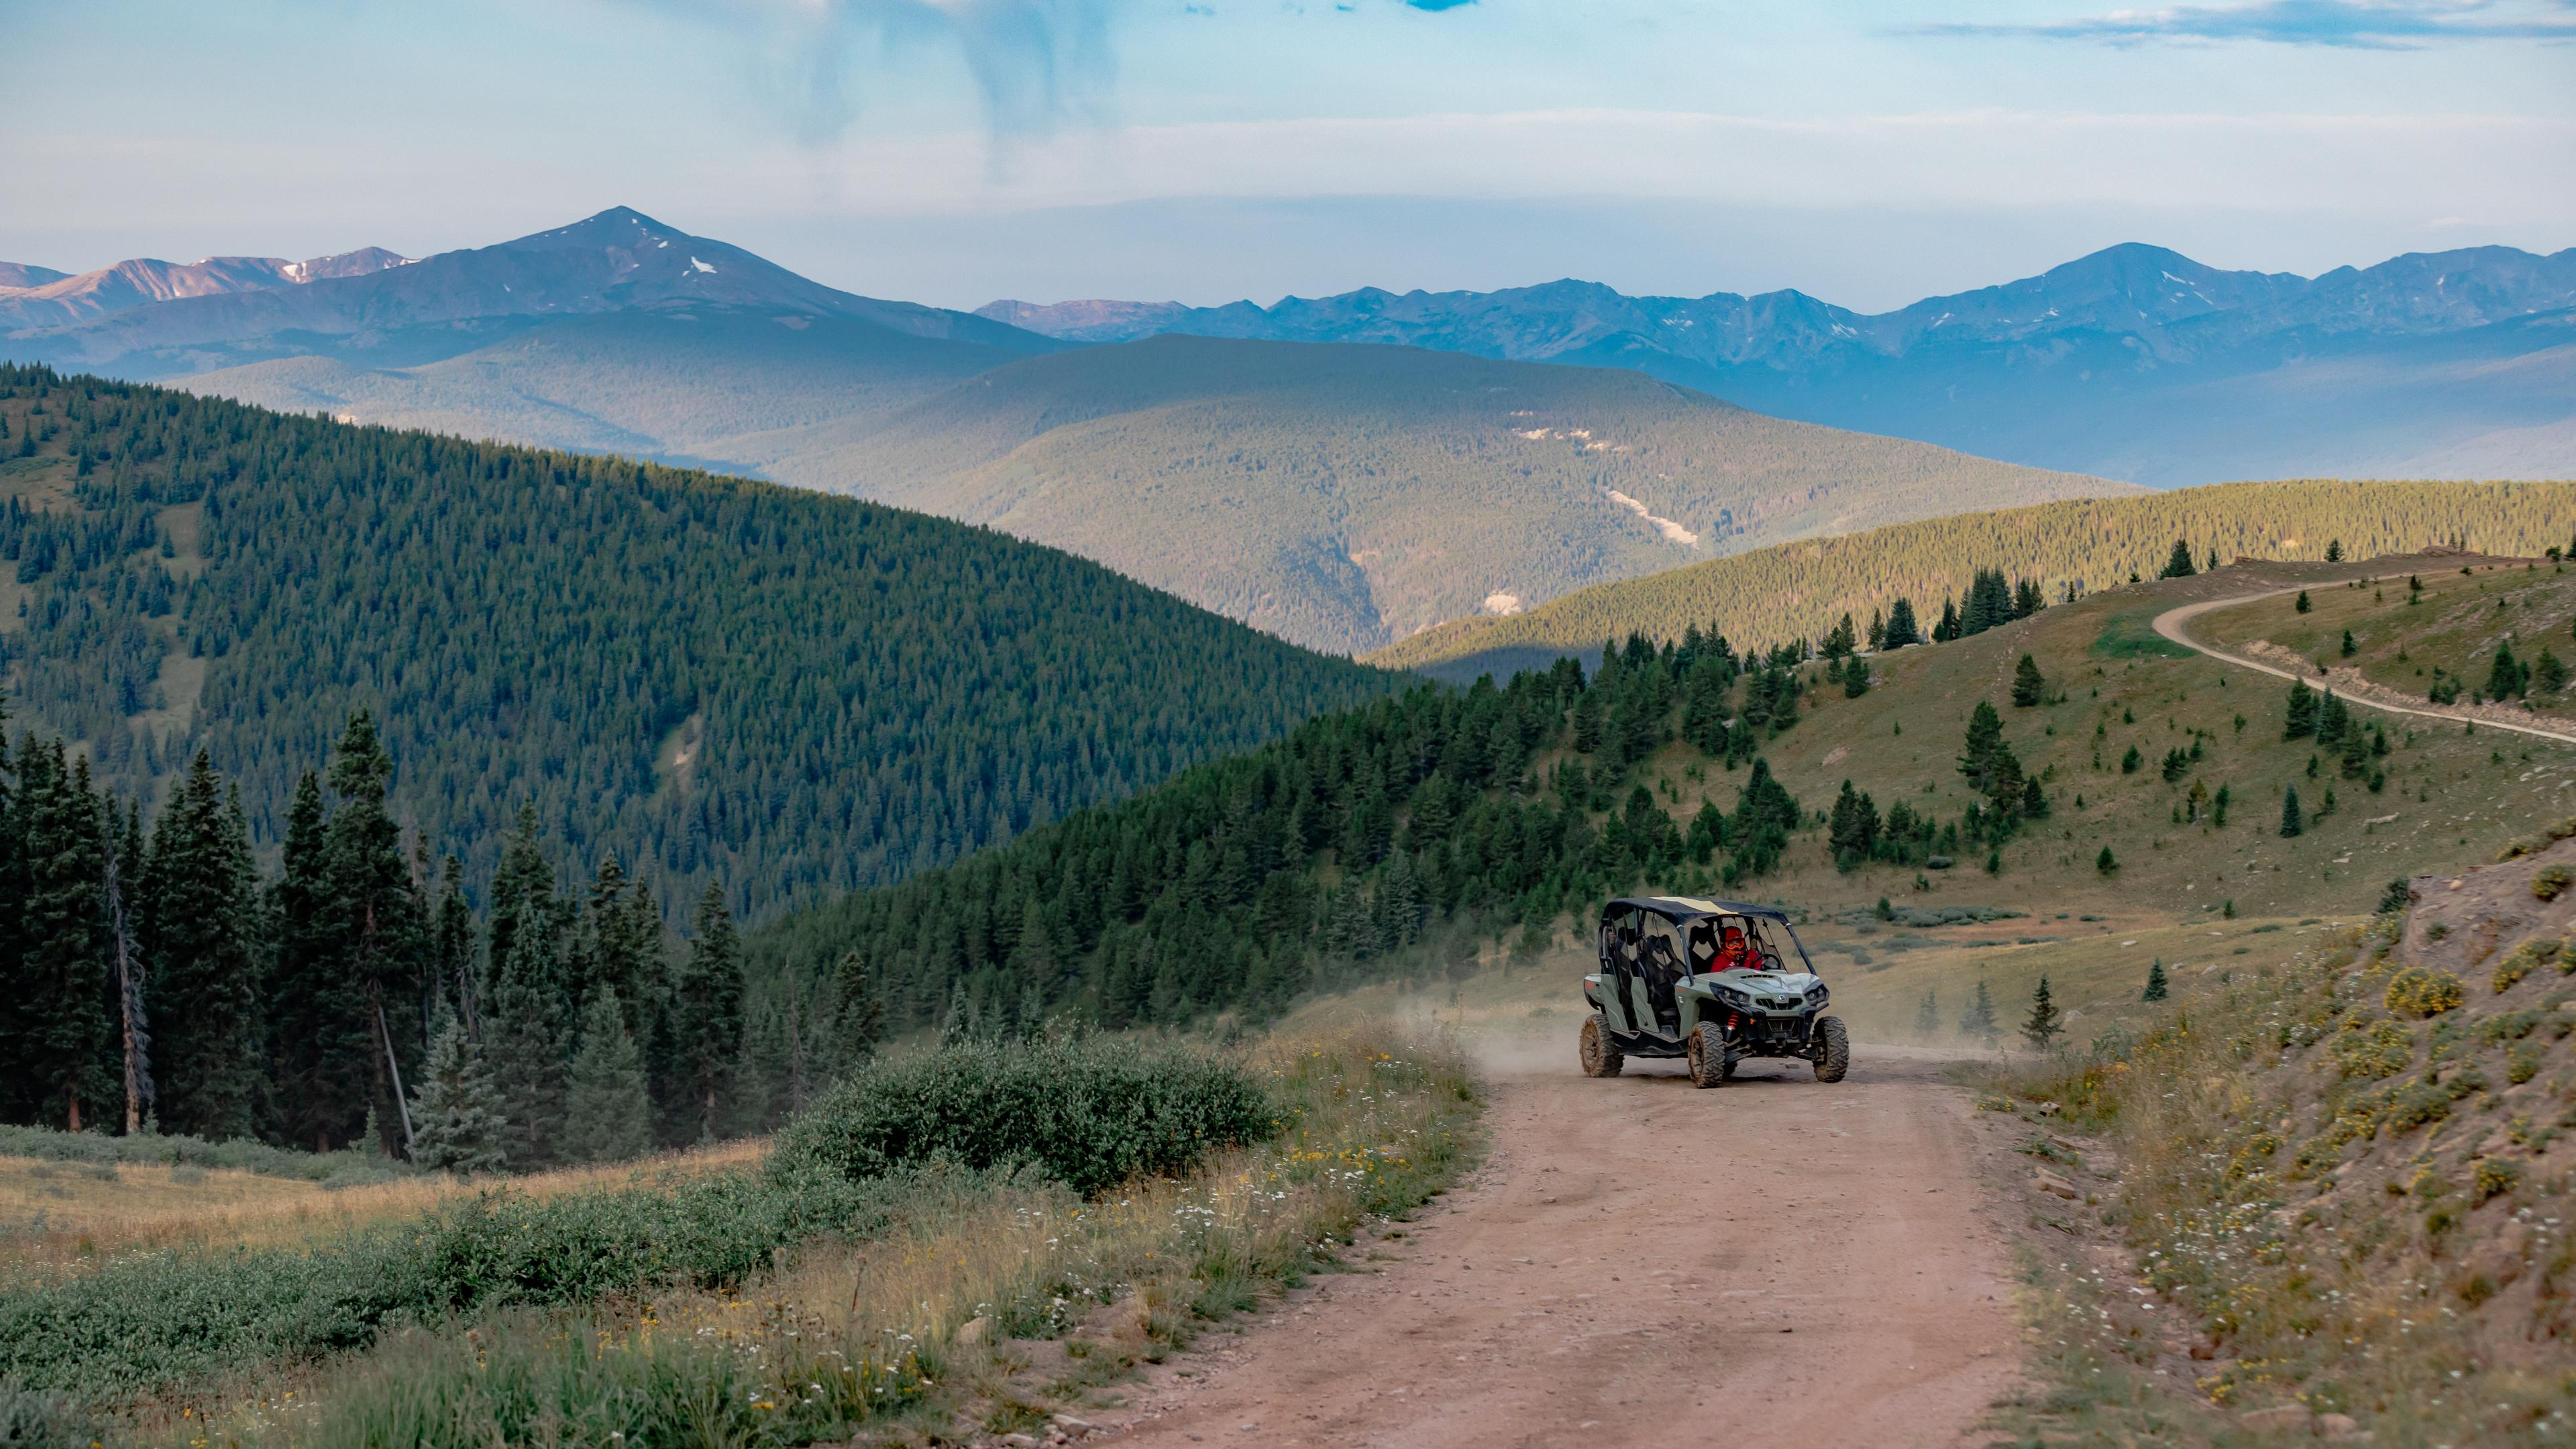 SSV ride in the mountains of Colorado